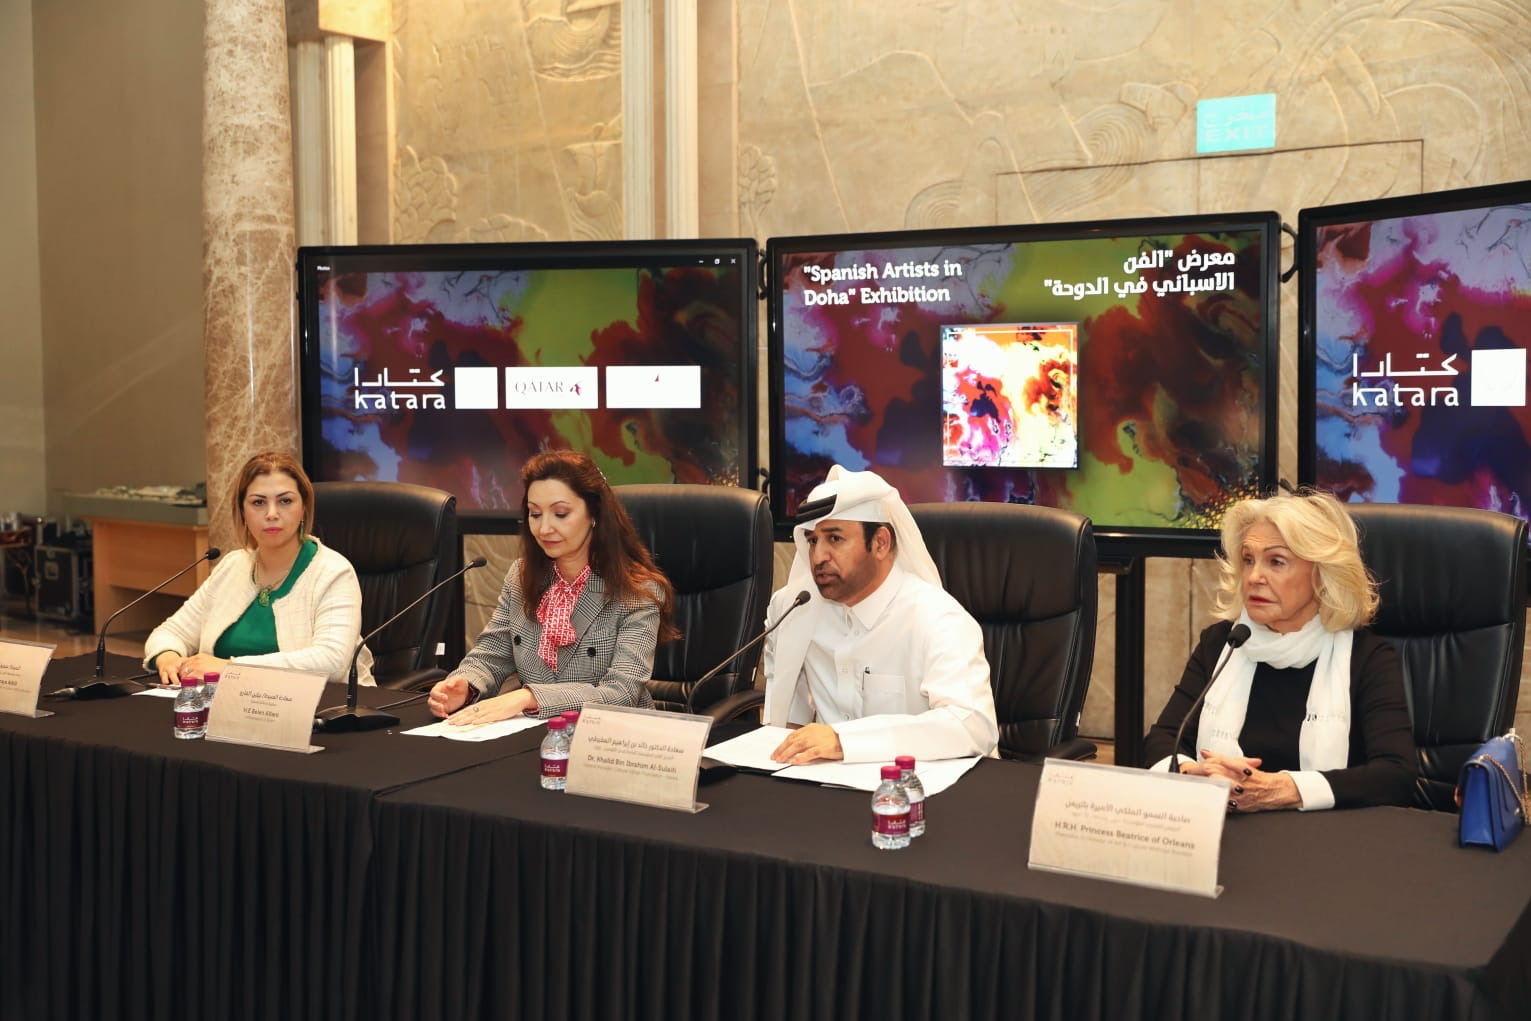 Soumaya Akbib, the Spanish Ambassador Her Excellency Belen Alfaro, Dr Khaled Al-Sulaiti and Princess Beatrice of Orleans during the press conference